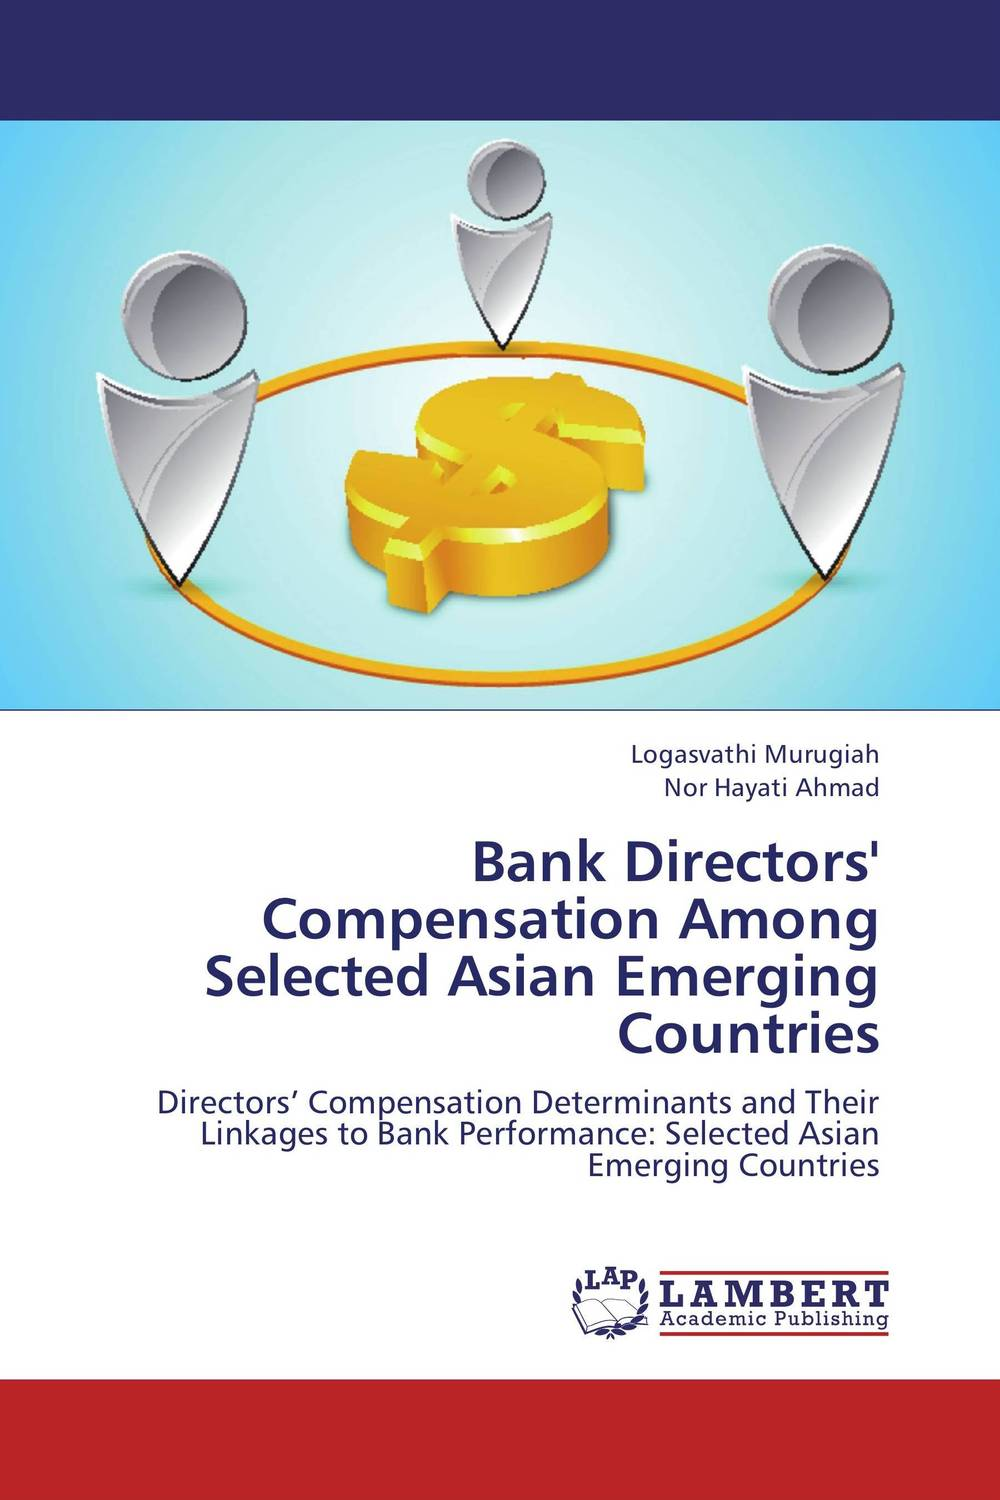 Bank Directors' Compensation Among Selected Asian Emerging Countries dr ripudaman singh mrs arihant kaur bhalla and er indpreet kaur stress among bank employees